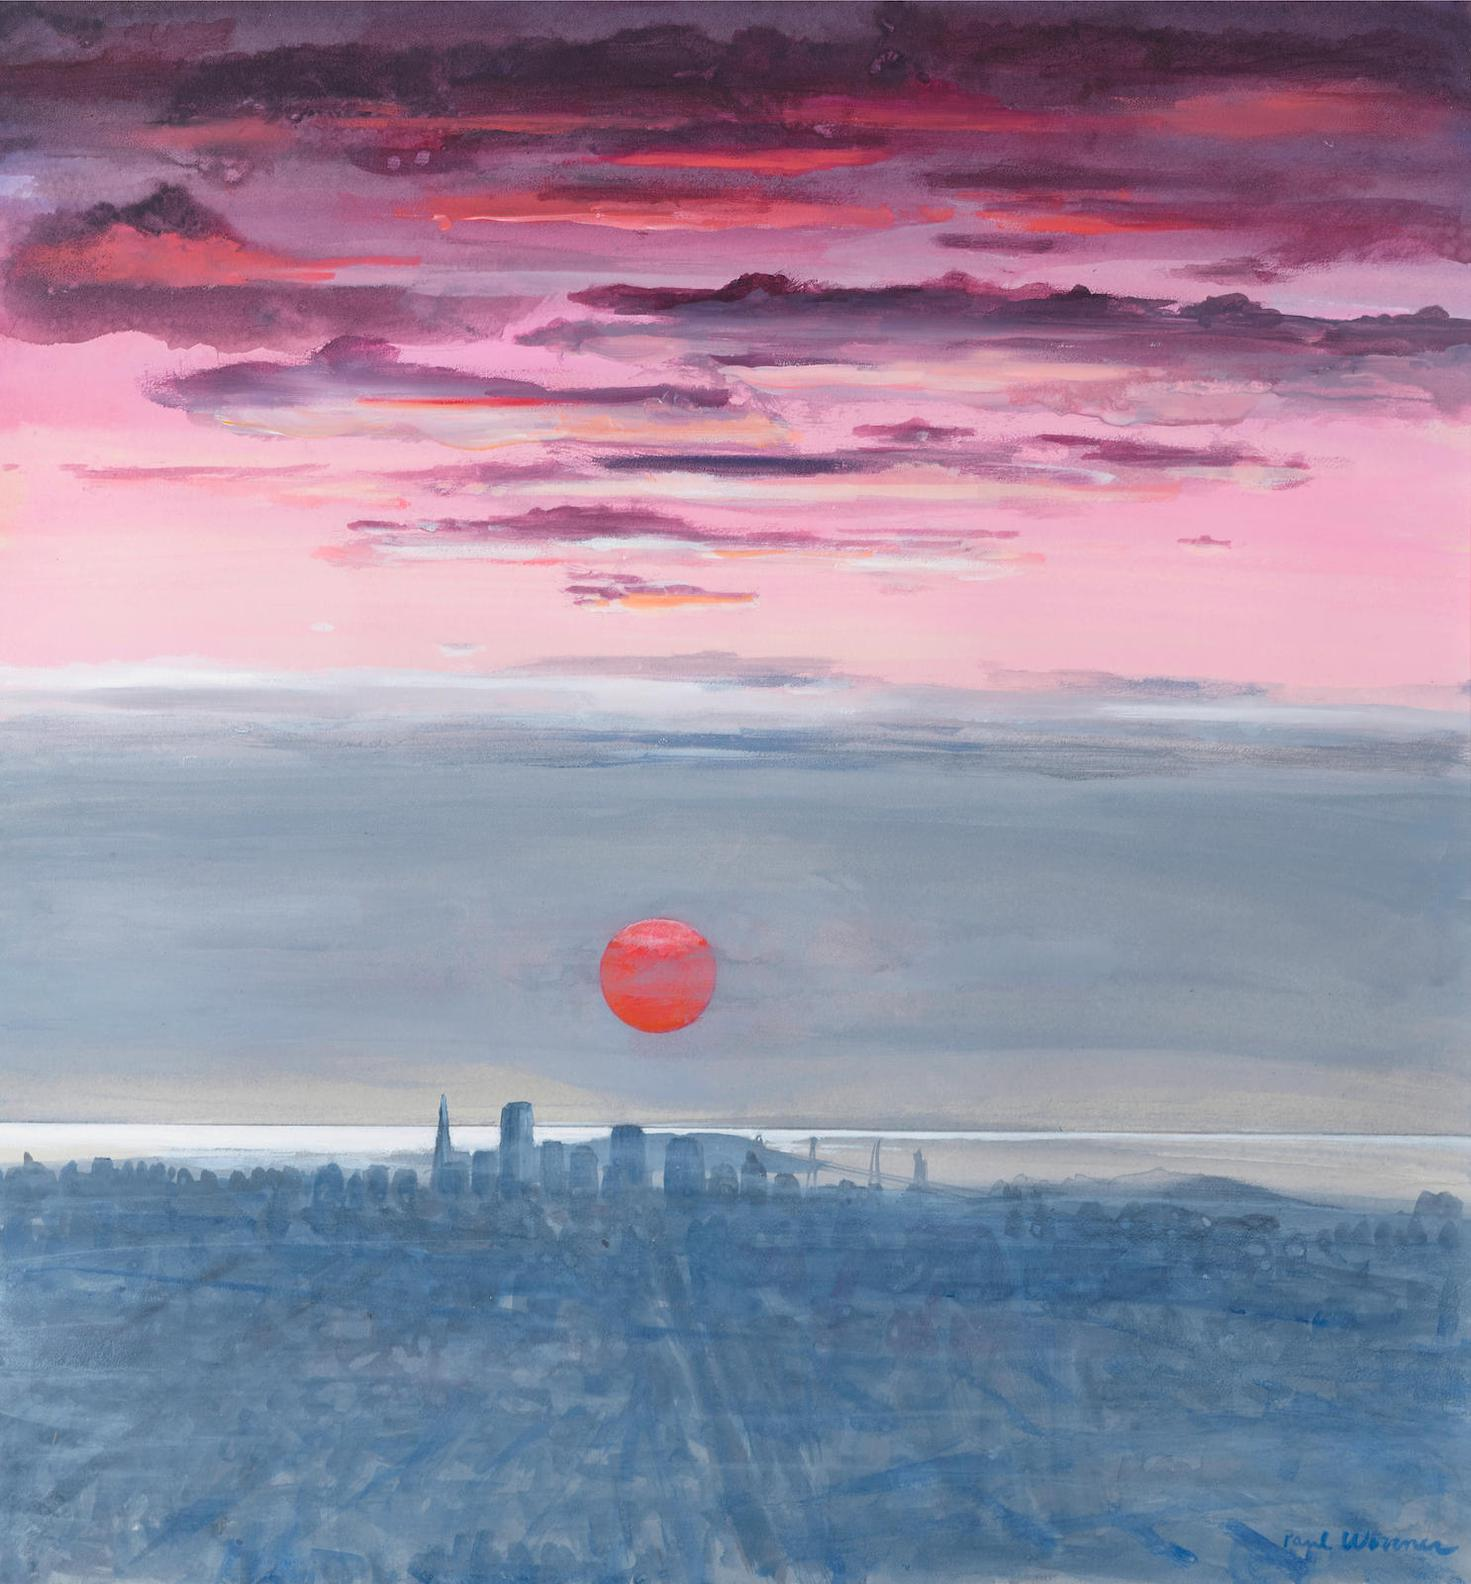 Paul Wonner-Twenty-Seven Studies For Romantic Views Of San Francisco: #14 Dawn With Red Sun Behind Fog-1980